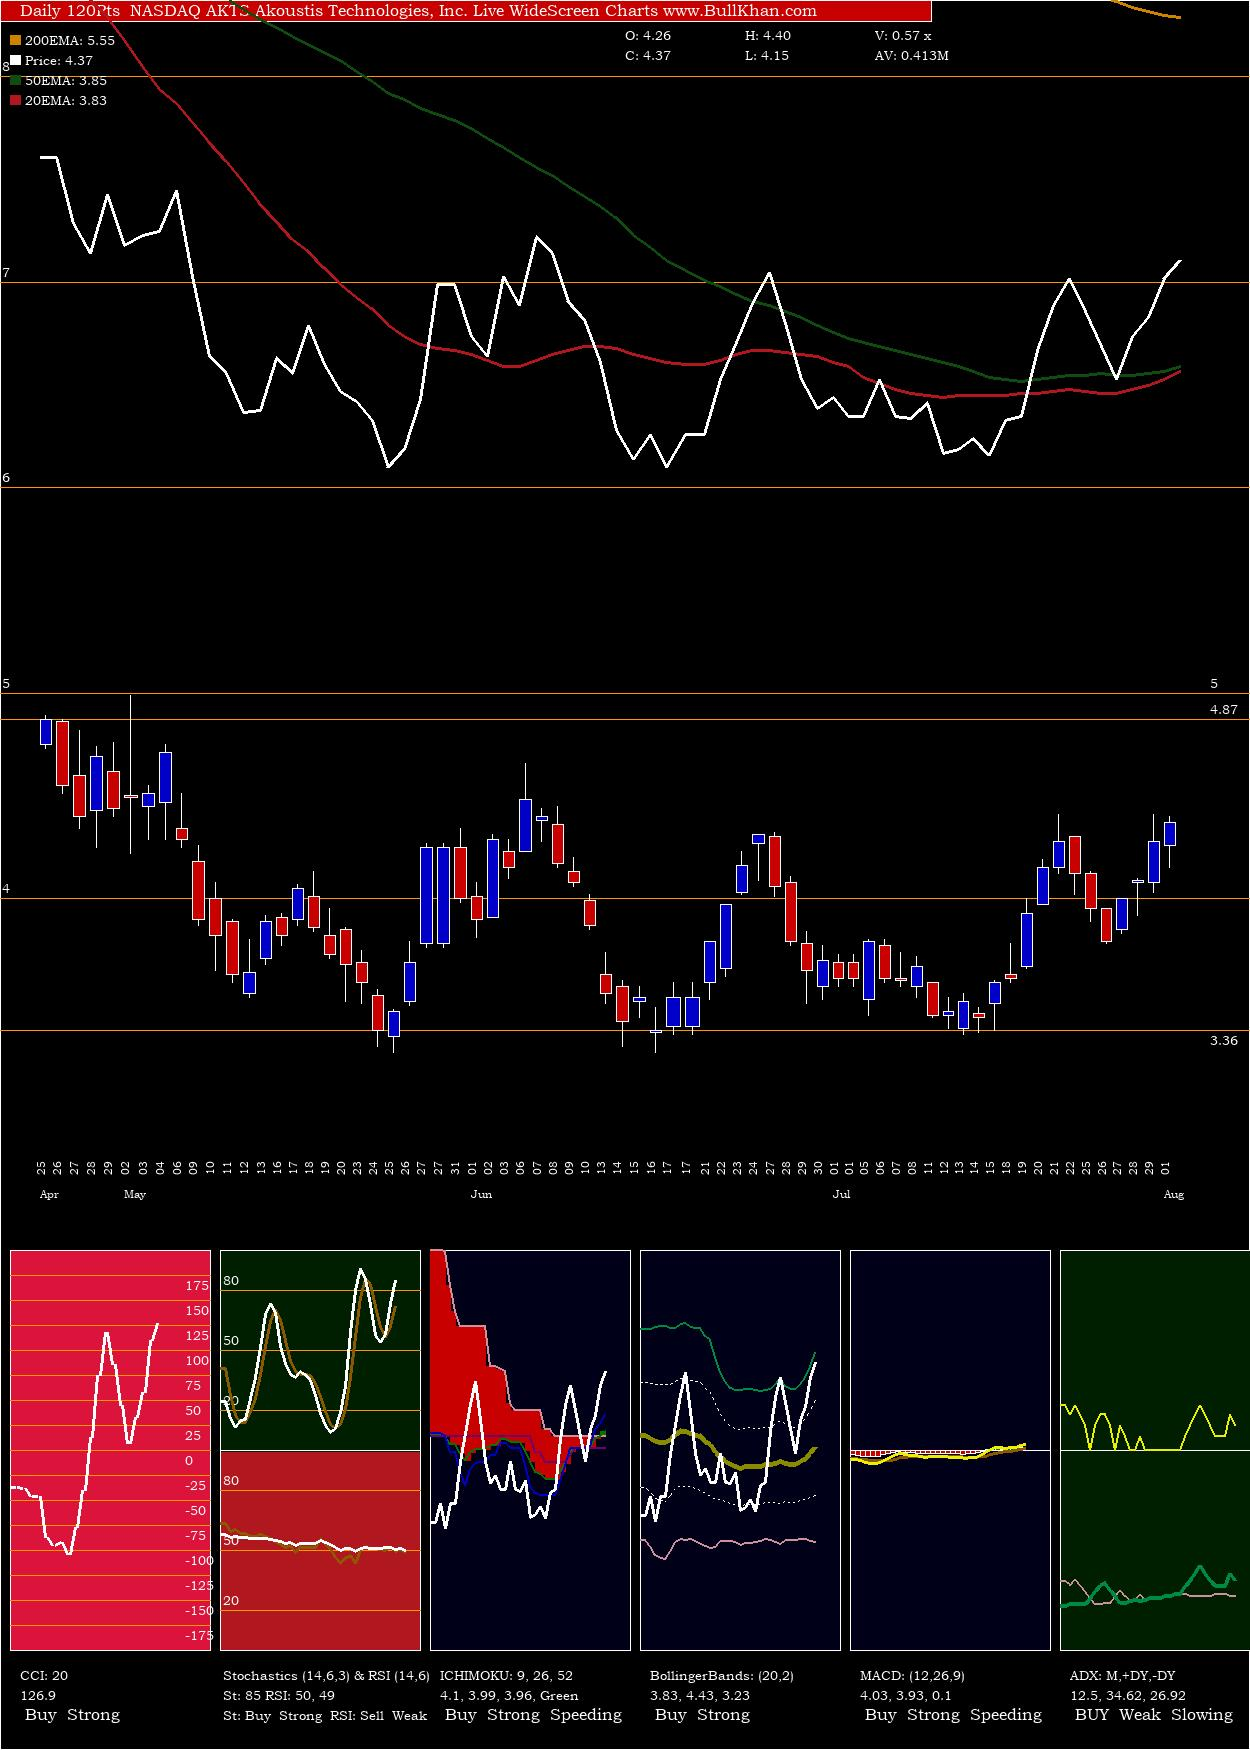 Akoustis Technologies, Inc. charts and indicators